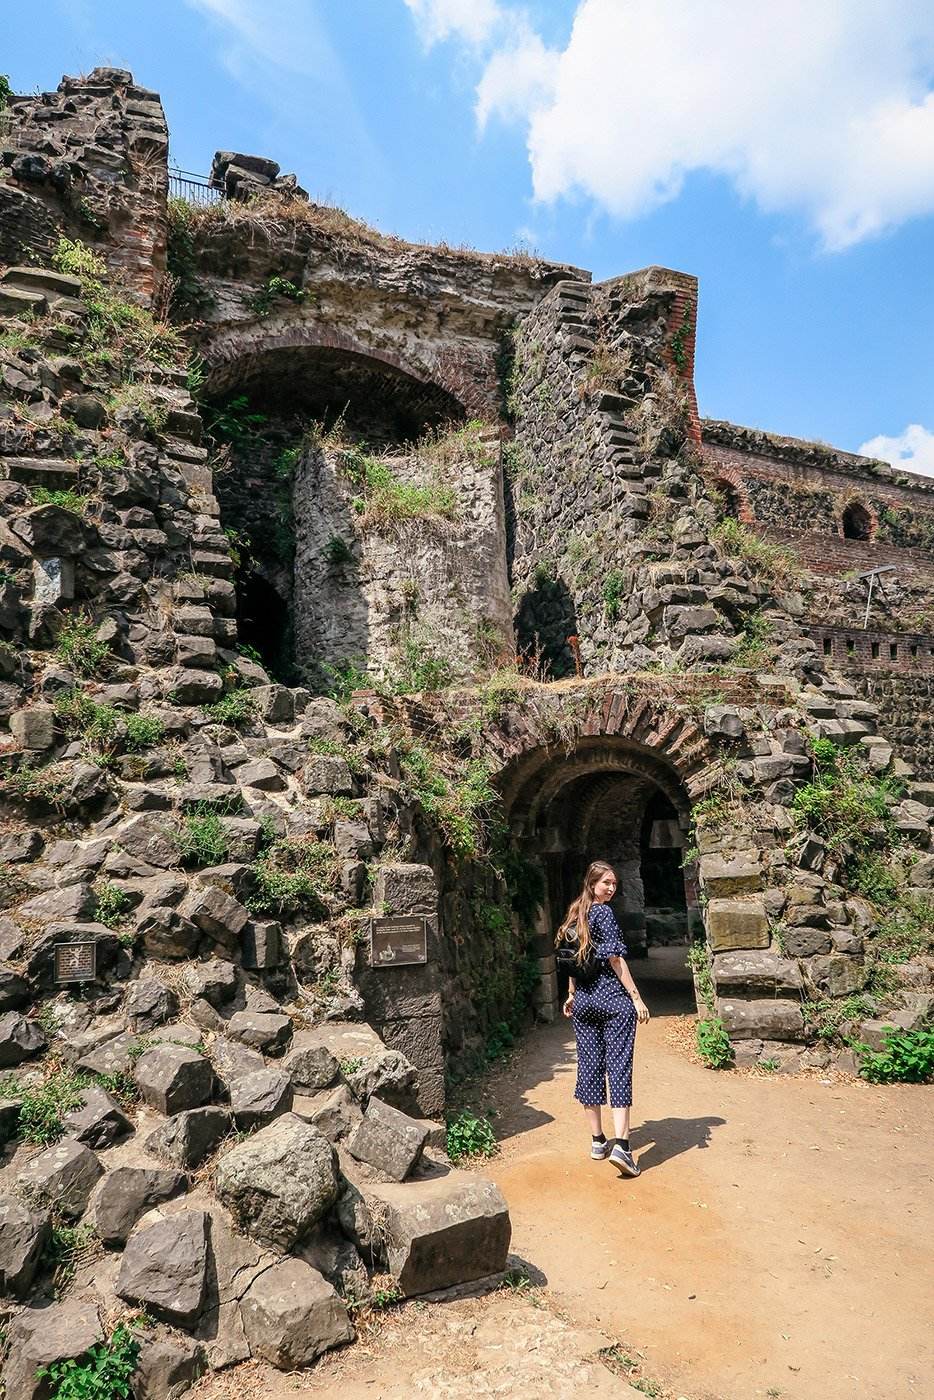 Kaiserpfalz ruins with a girl standing in front of the gate at Düsseldorf Kaiserswerth